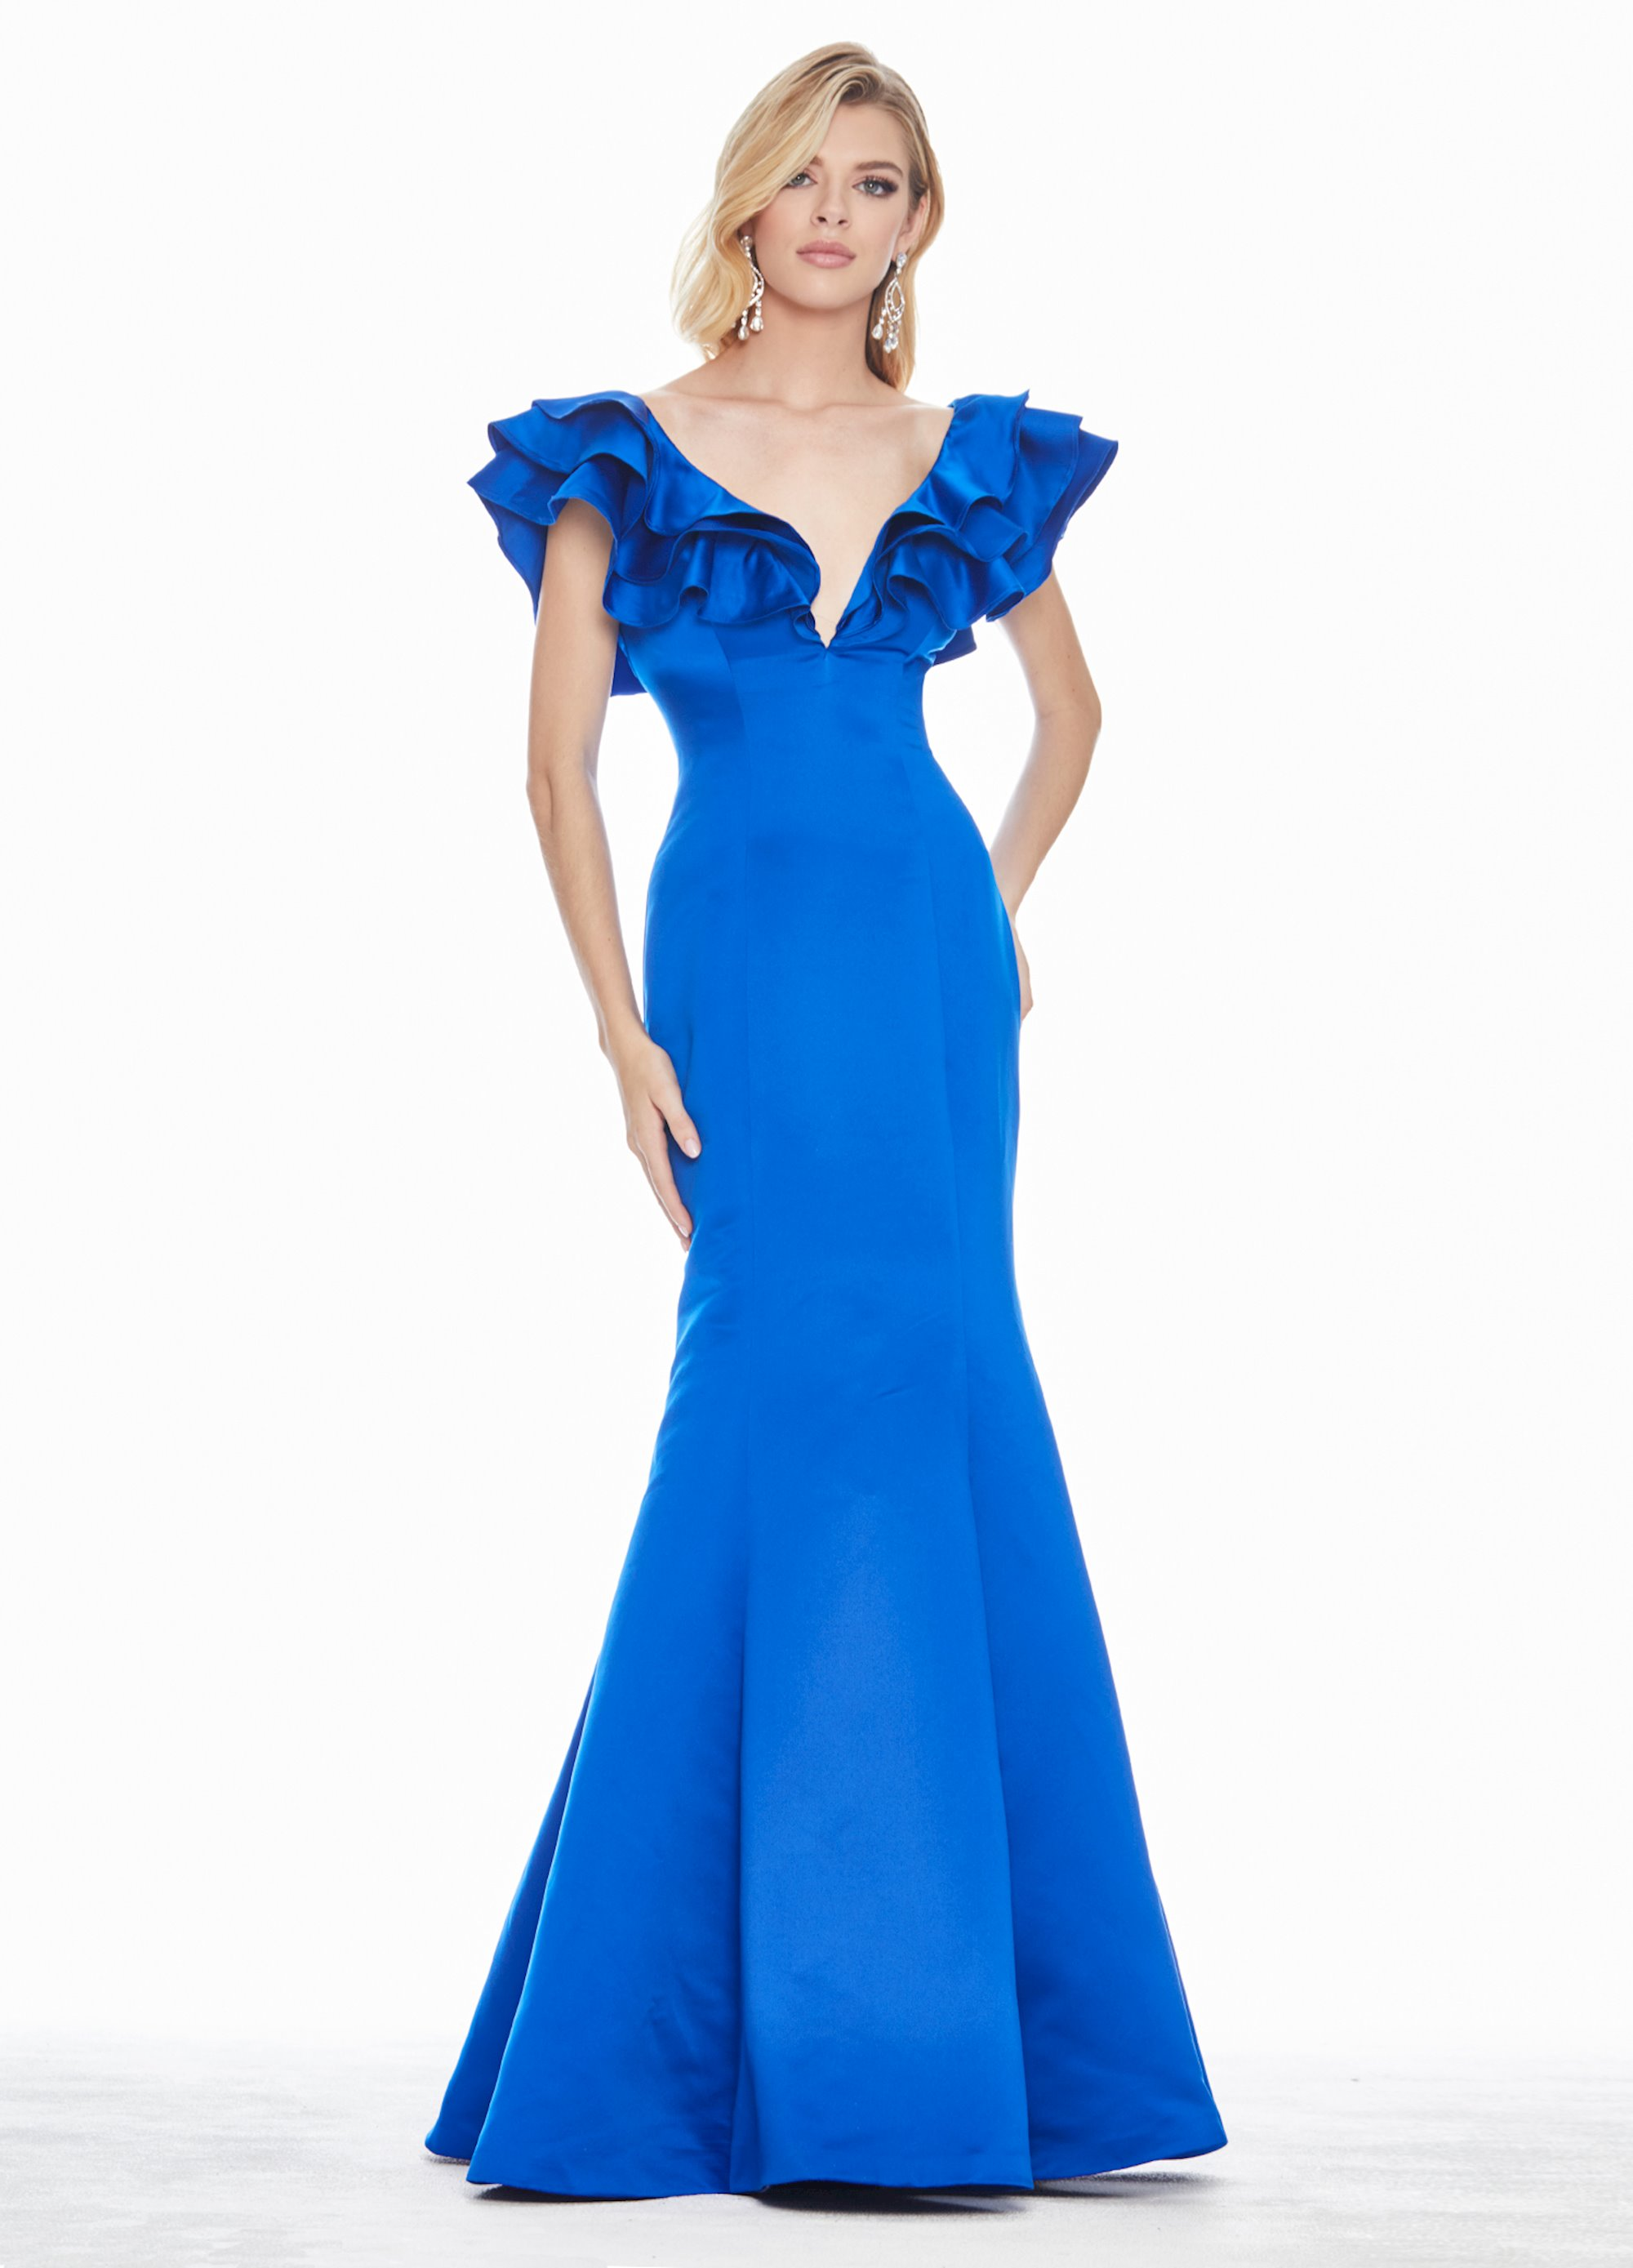 a585adfb18c Ashley Lauren Ruffle Sleeve Evening Dress. Double tap to zoom